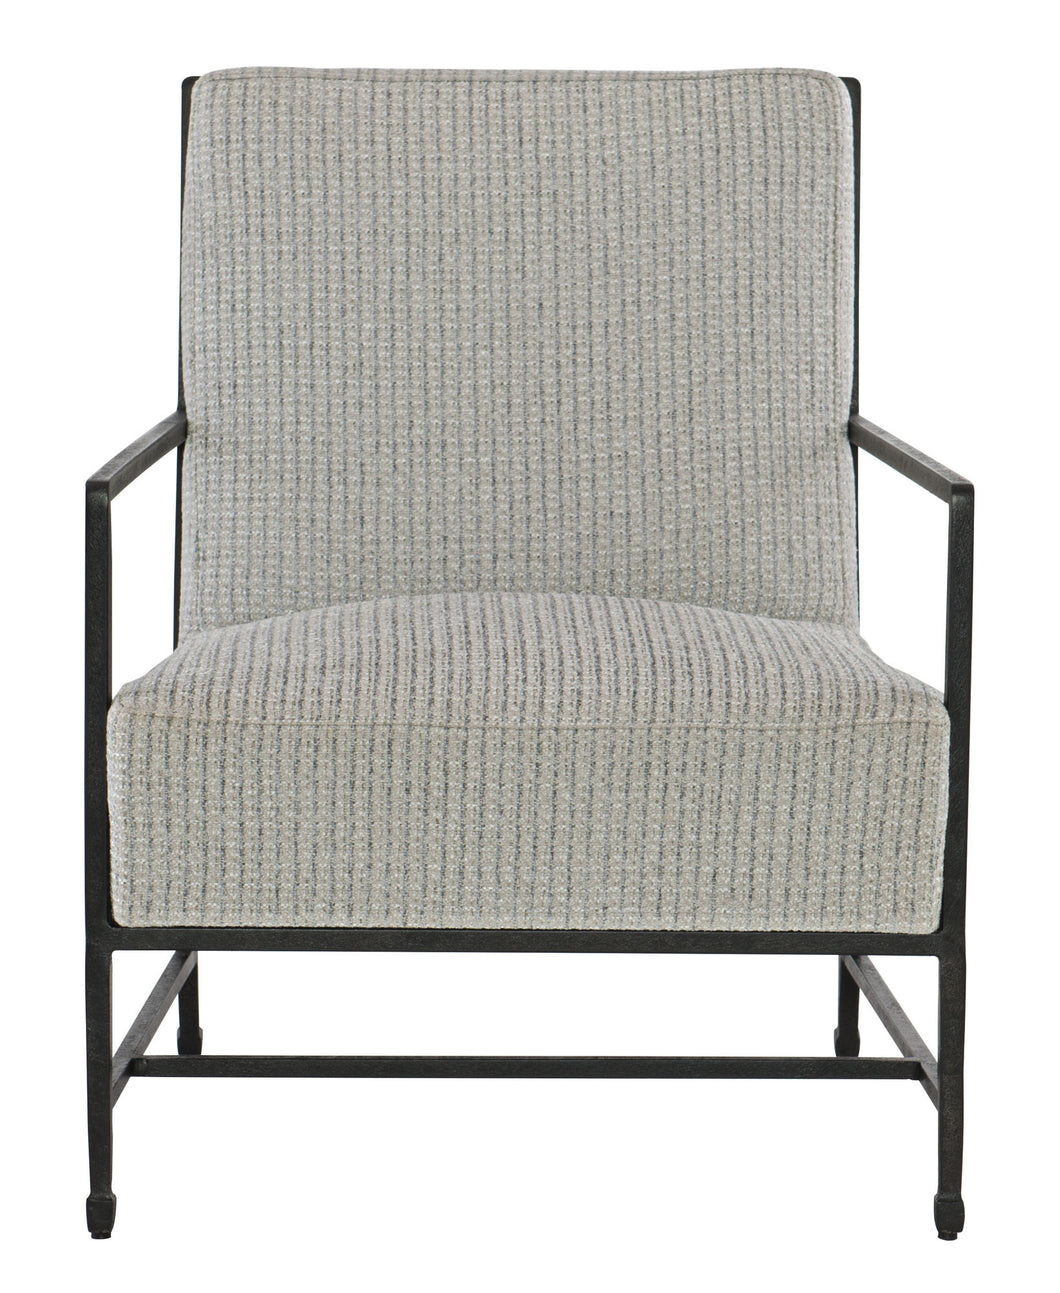 Hector Chair with Iron Legs